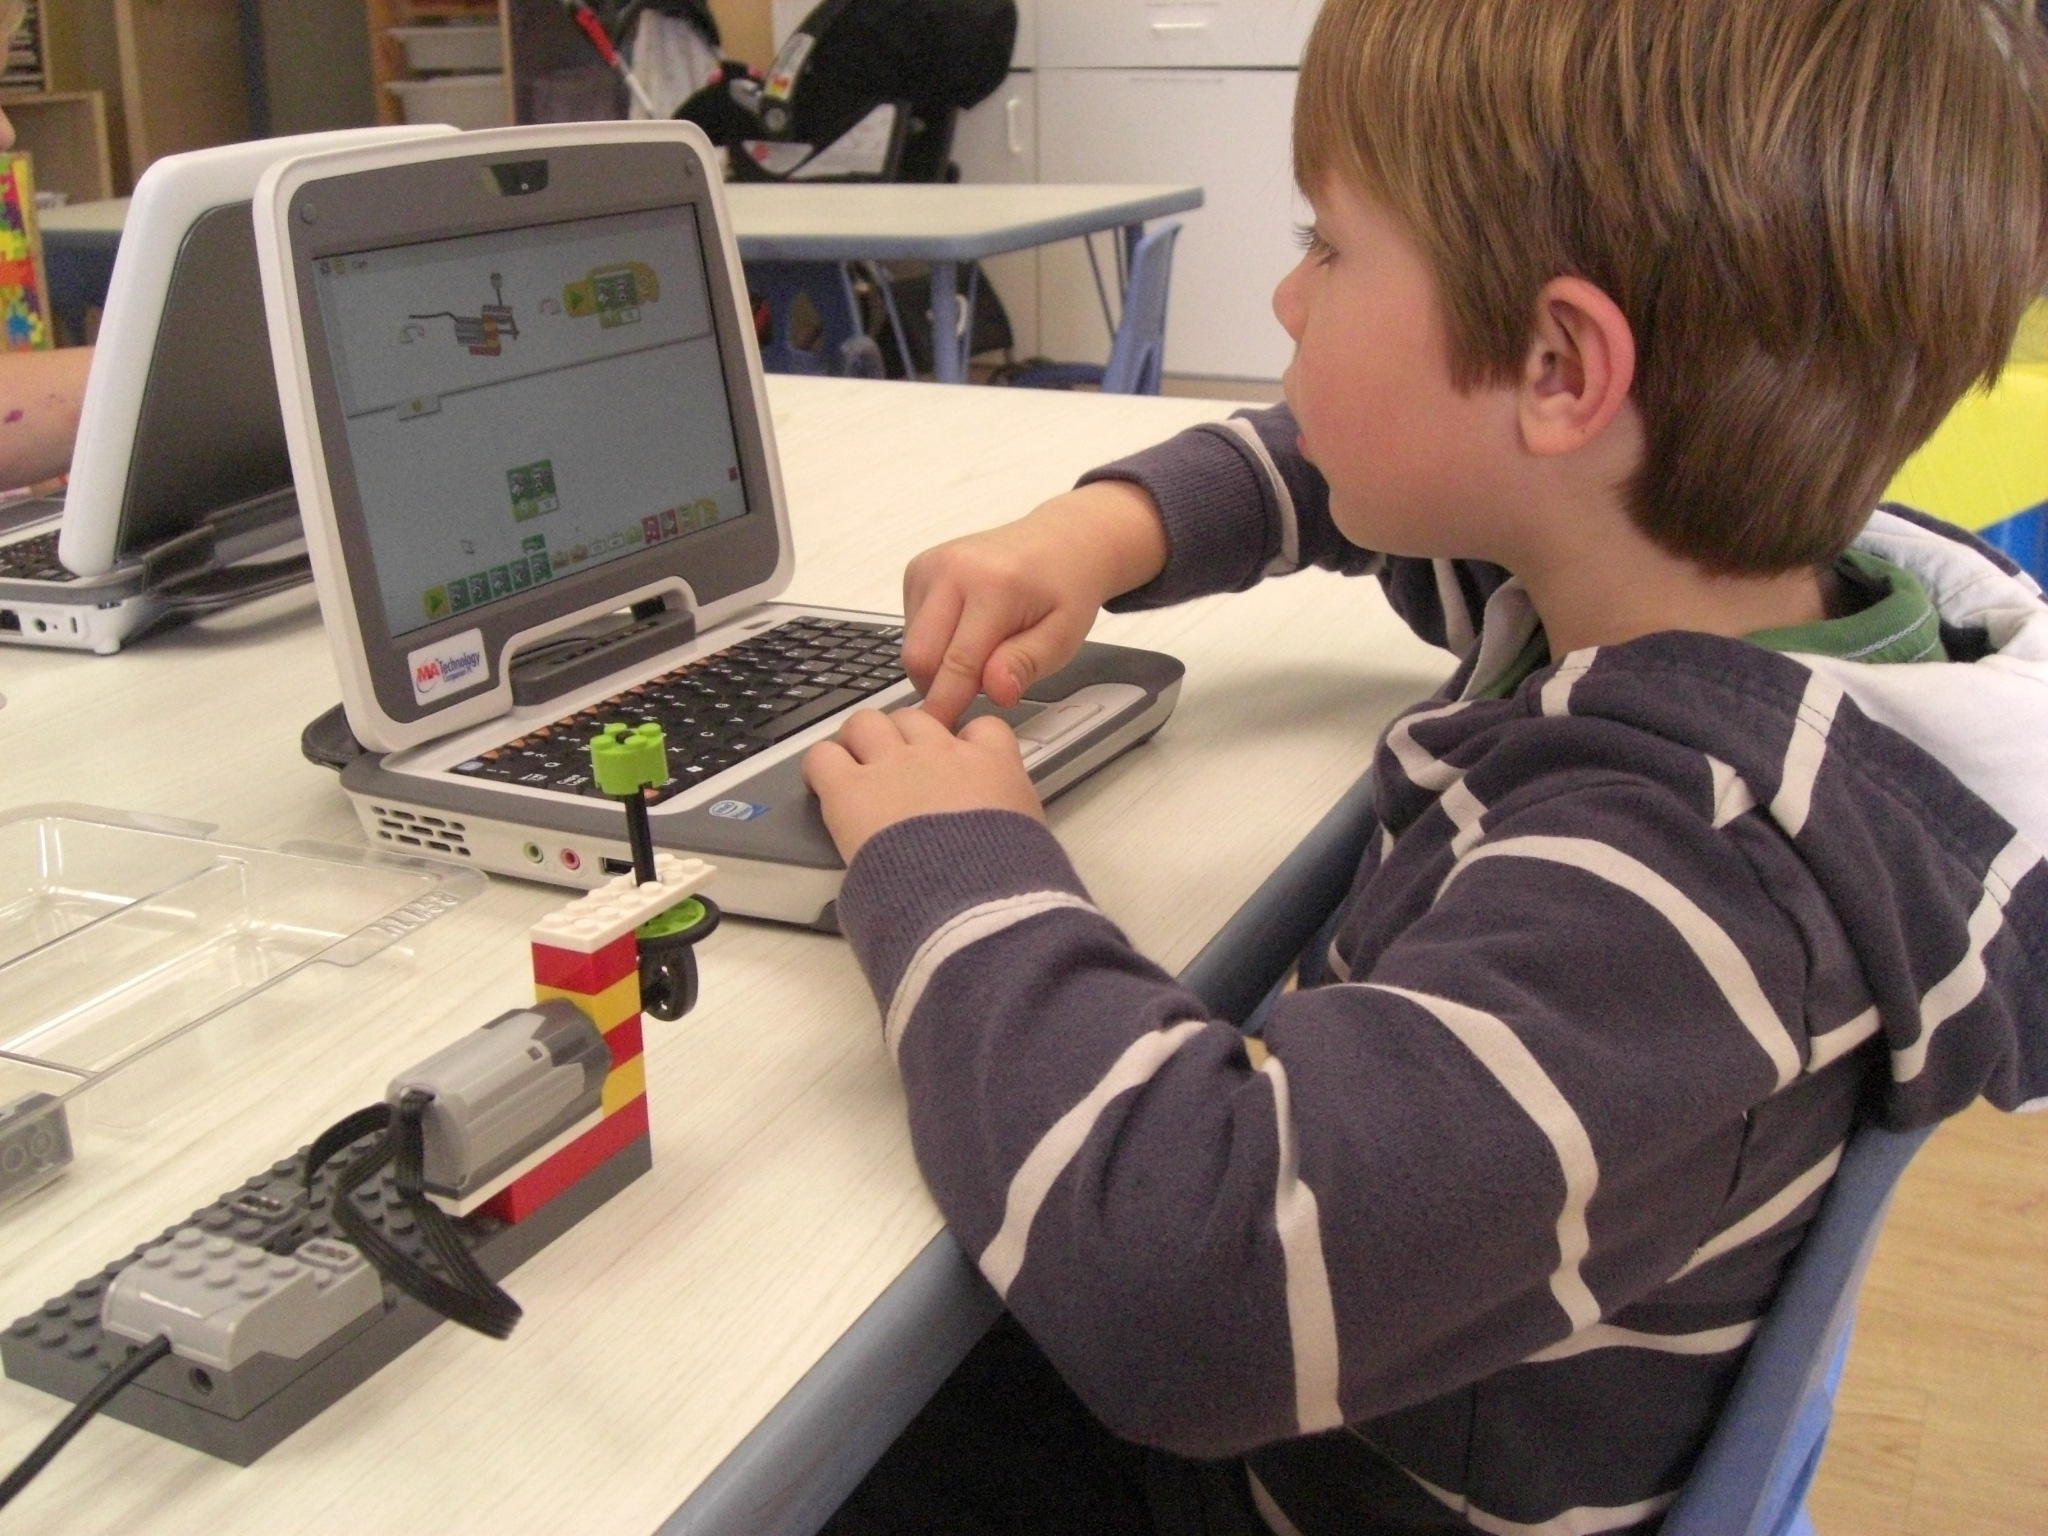 Max Crothall, 6, uses a computer to build and program a robot to move and make sound. Kids can do this at Bricks and Motors in Rye Brook, Westchester.